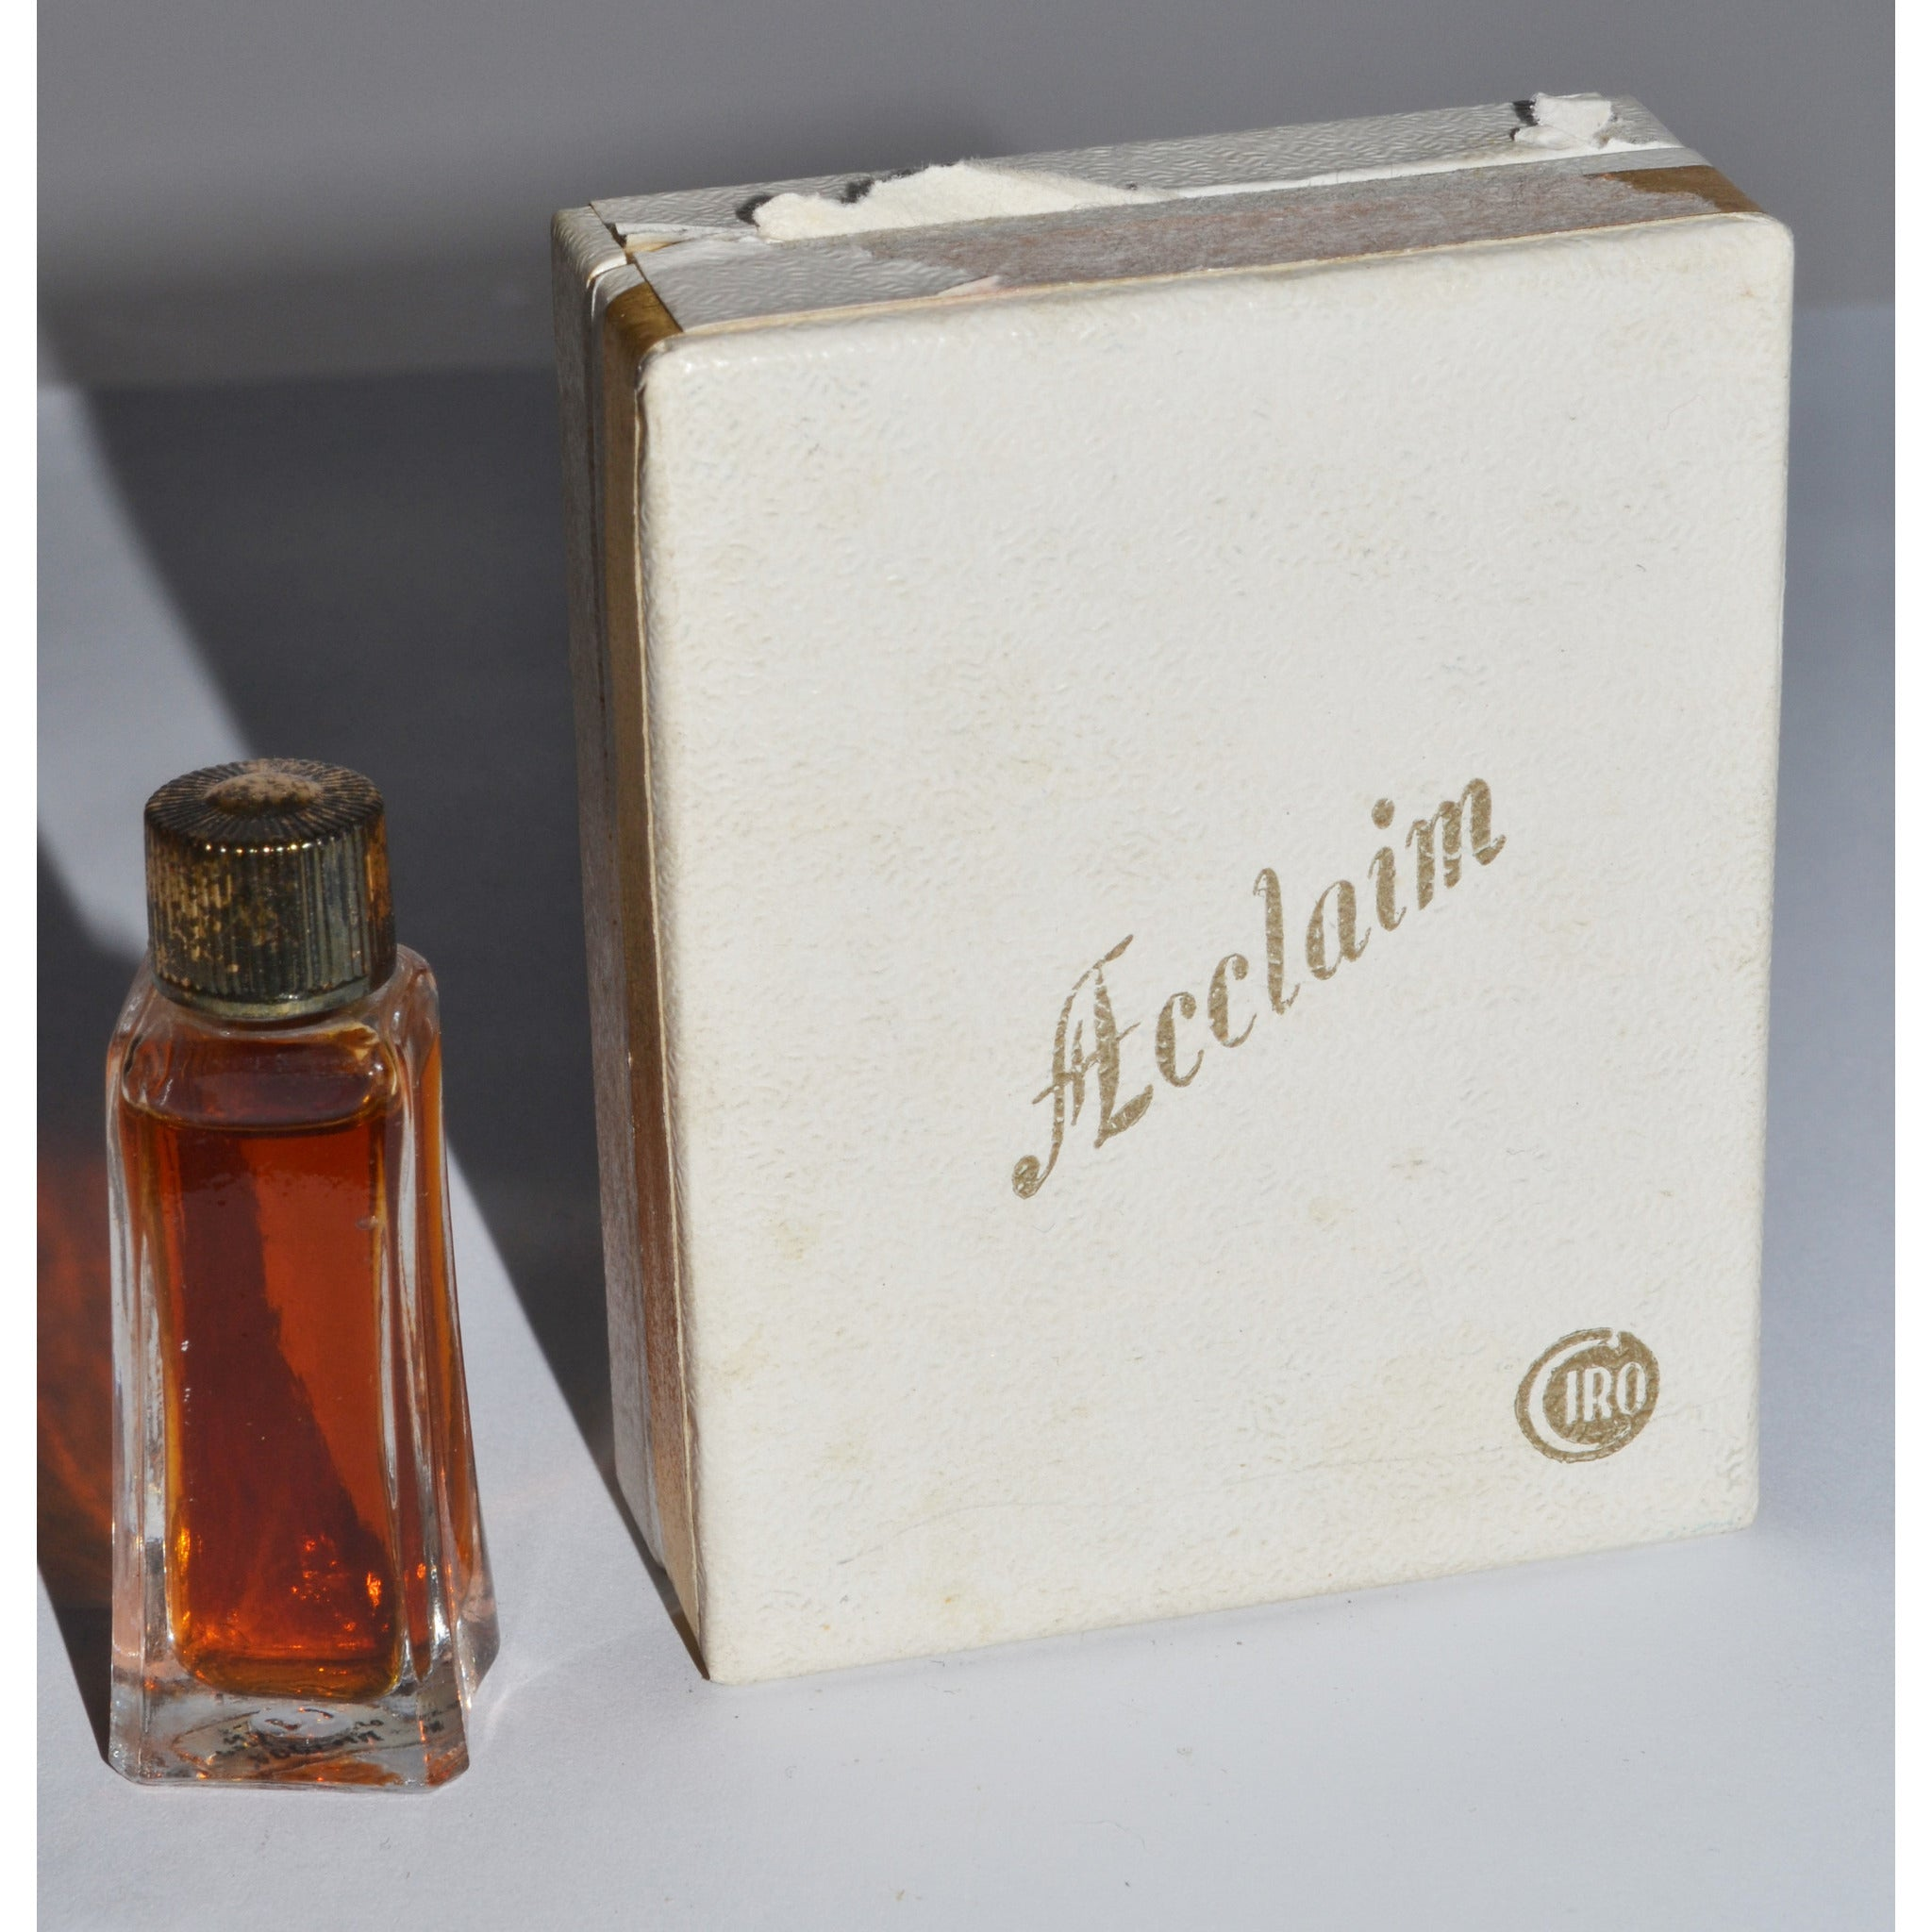 Vintage Acclaim Perfume Mini By Ciro